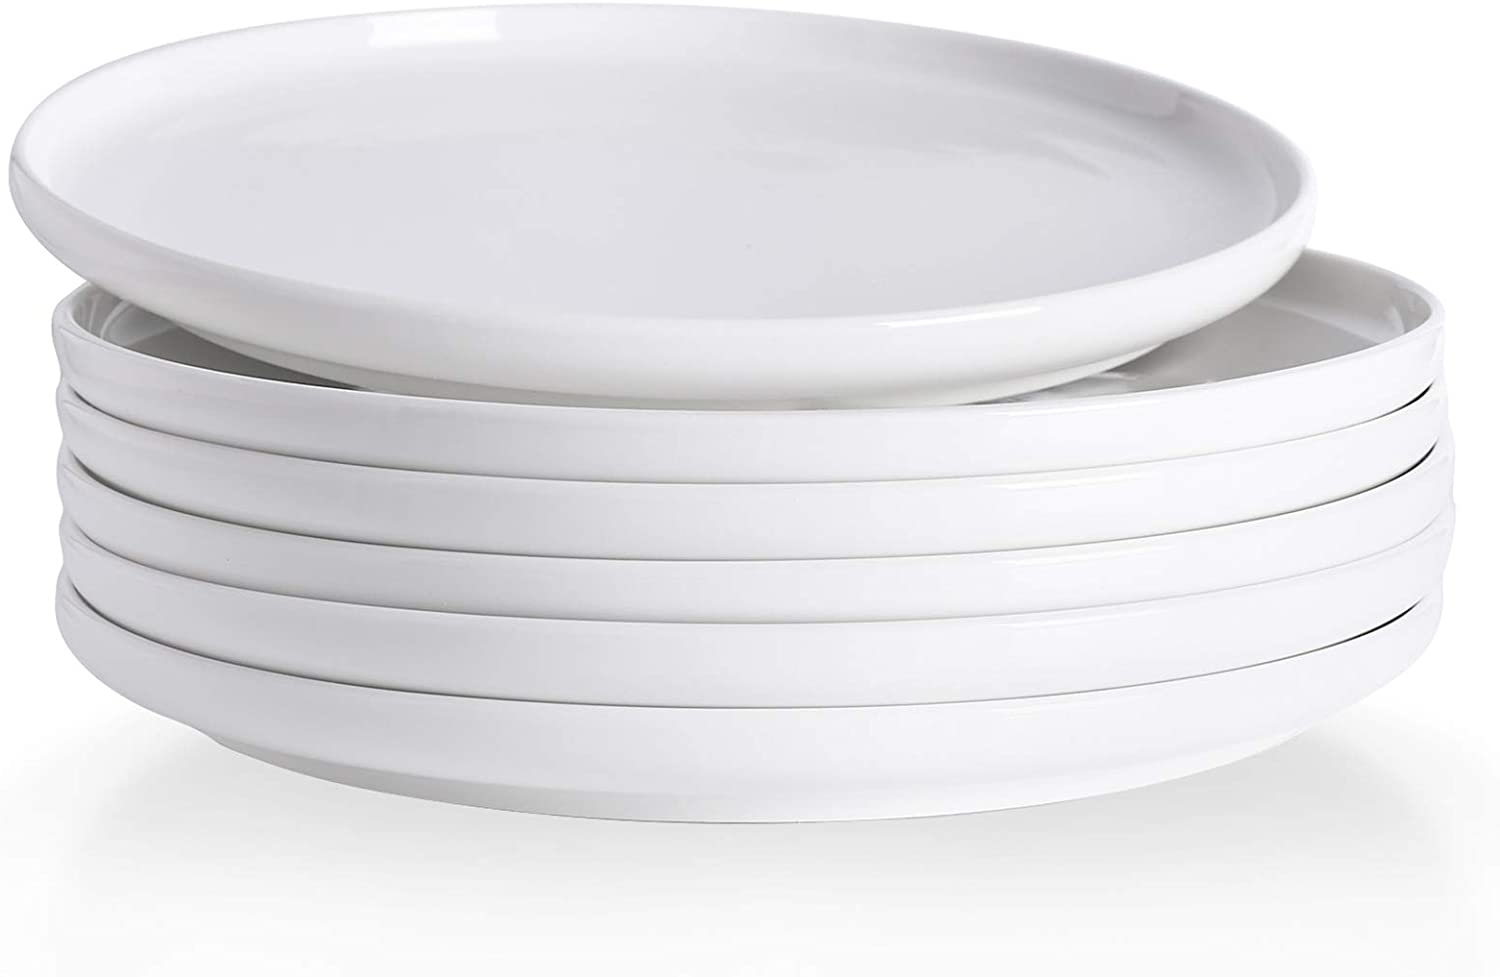 Kanwone Porcelain Dinner Plates - 10 Inch - Set of 6, White, Microwave and Dishwasher Safe Plates